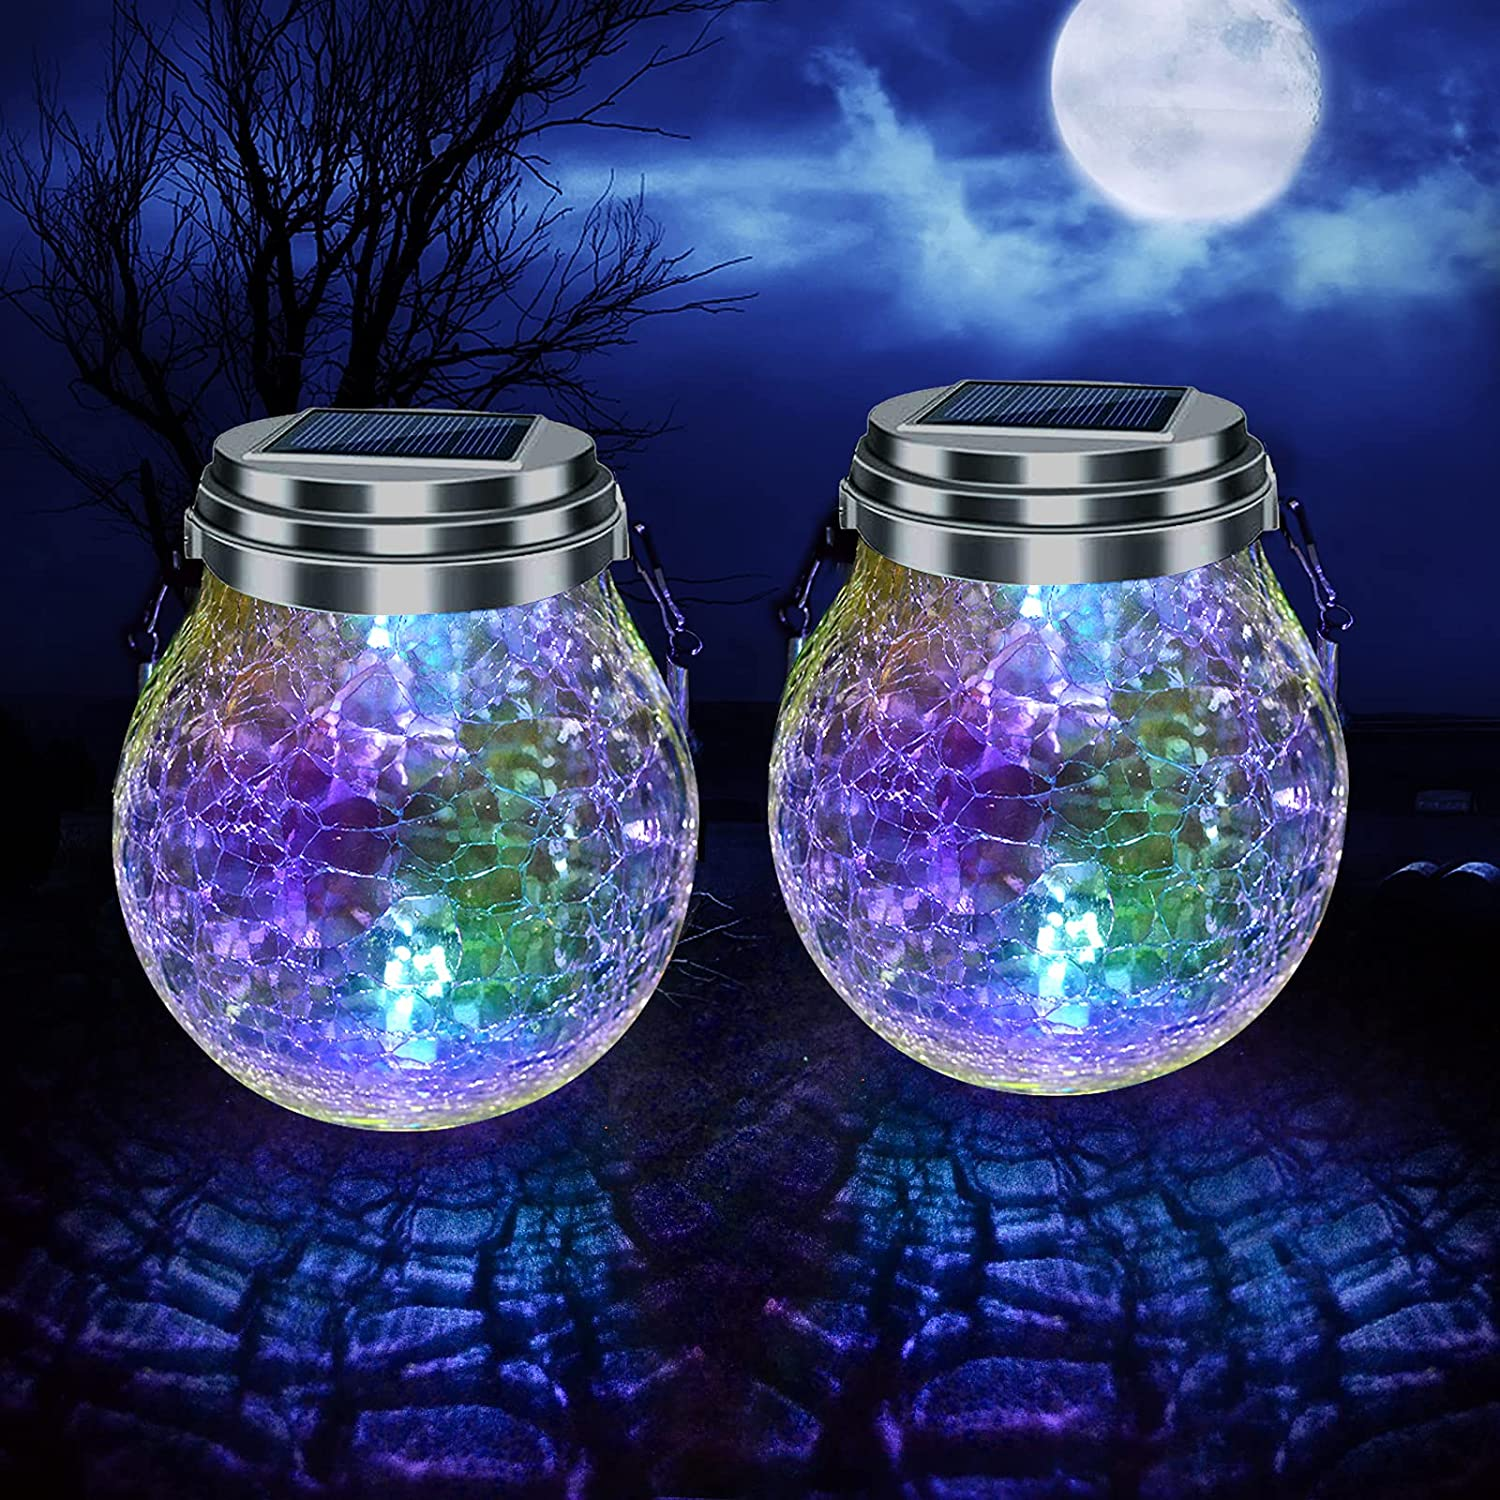 Yipetor Outdoor Hanging Solar Lights, Colorful Crackle Glass Ball, LED Waterproof Solar Powered Globe Lamp with Handle for Garden Tree Yard Patio Lawn Halloween Gifts Decoration, 2 Pack